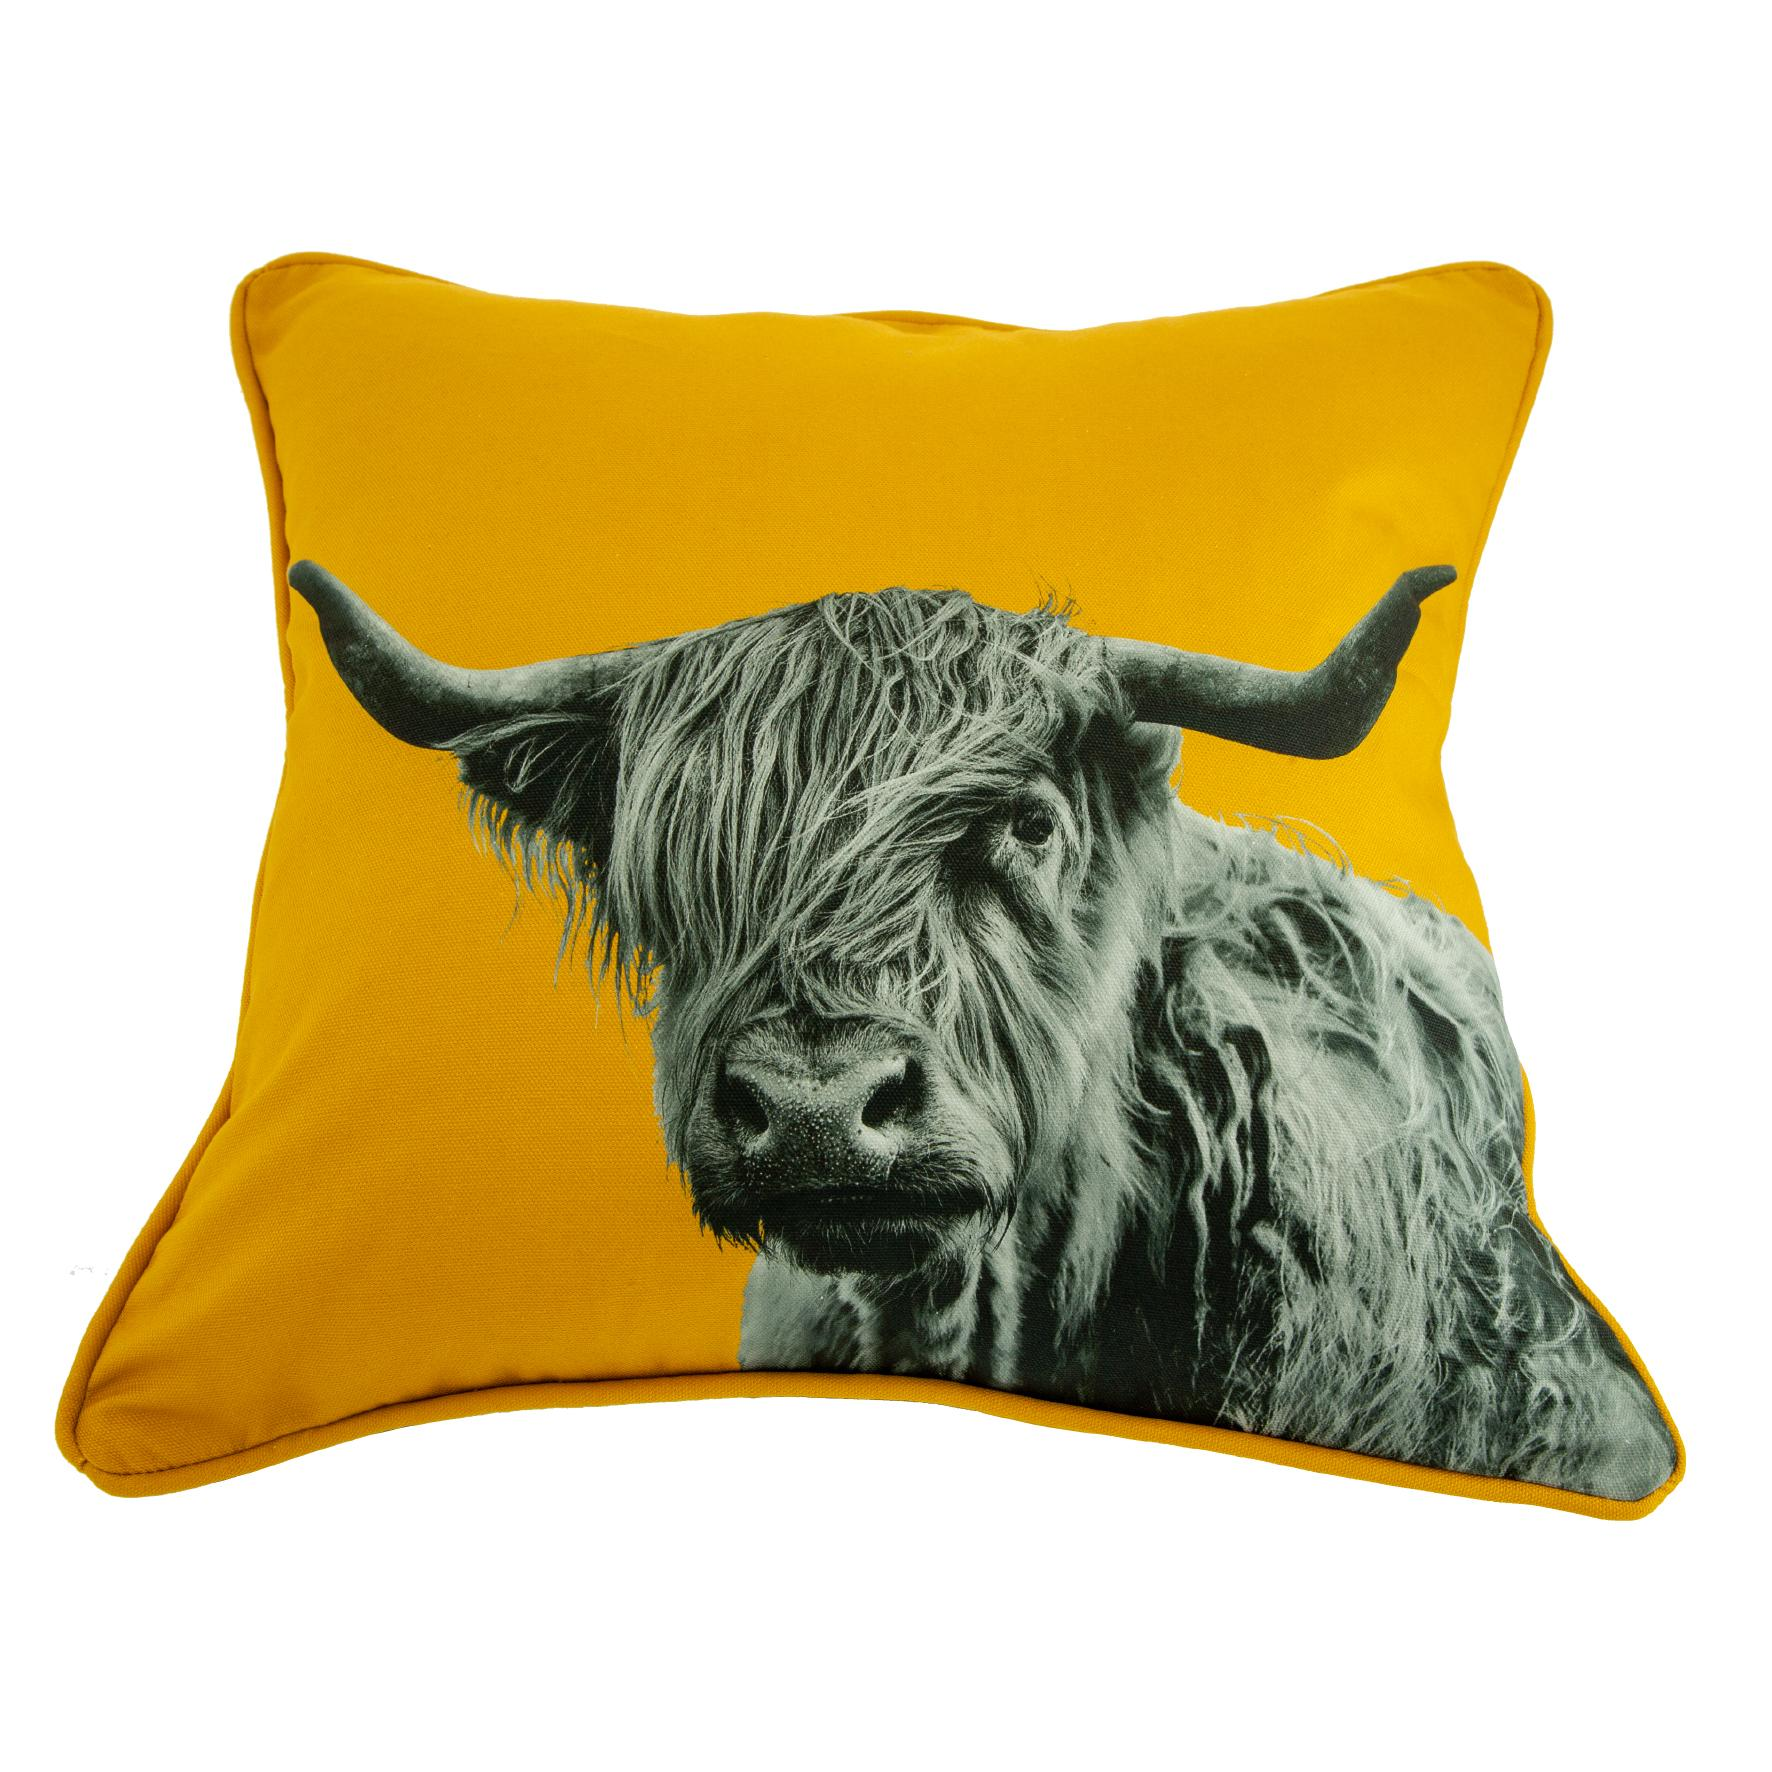 Highland Cow Cushion on Mustard